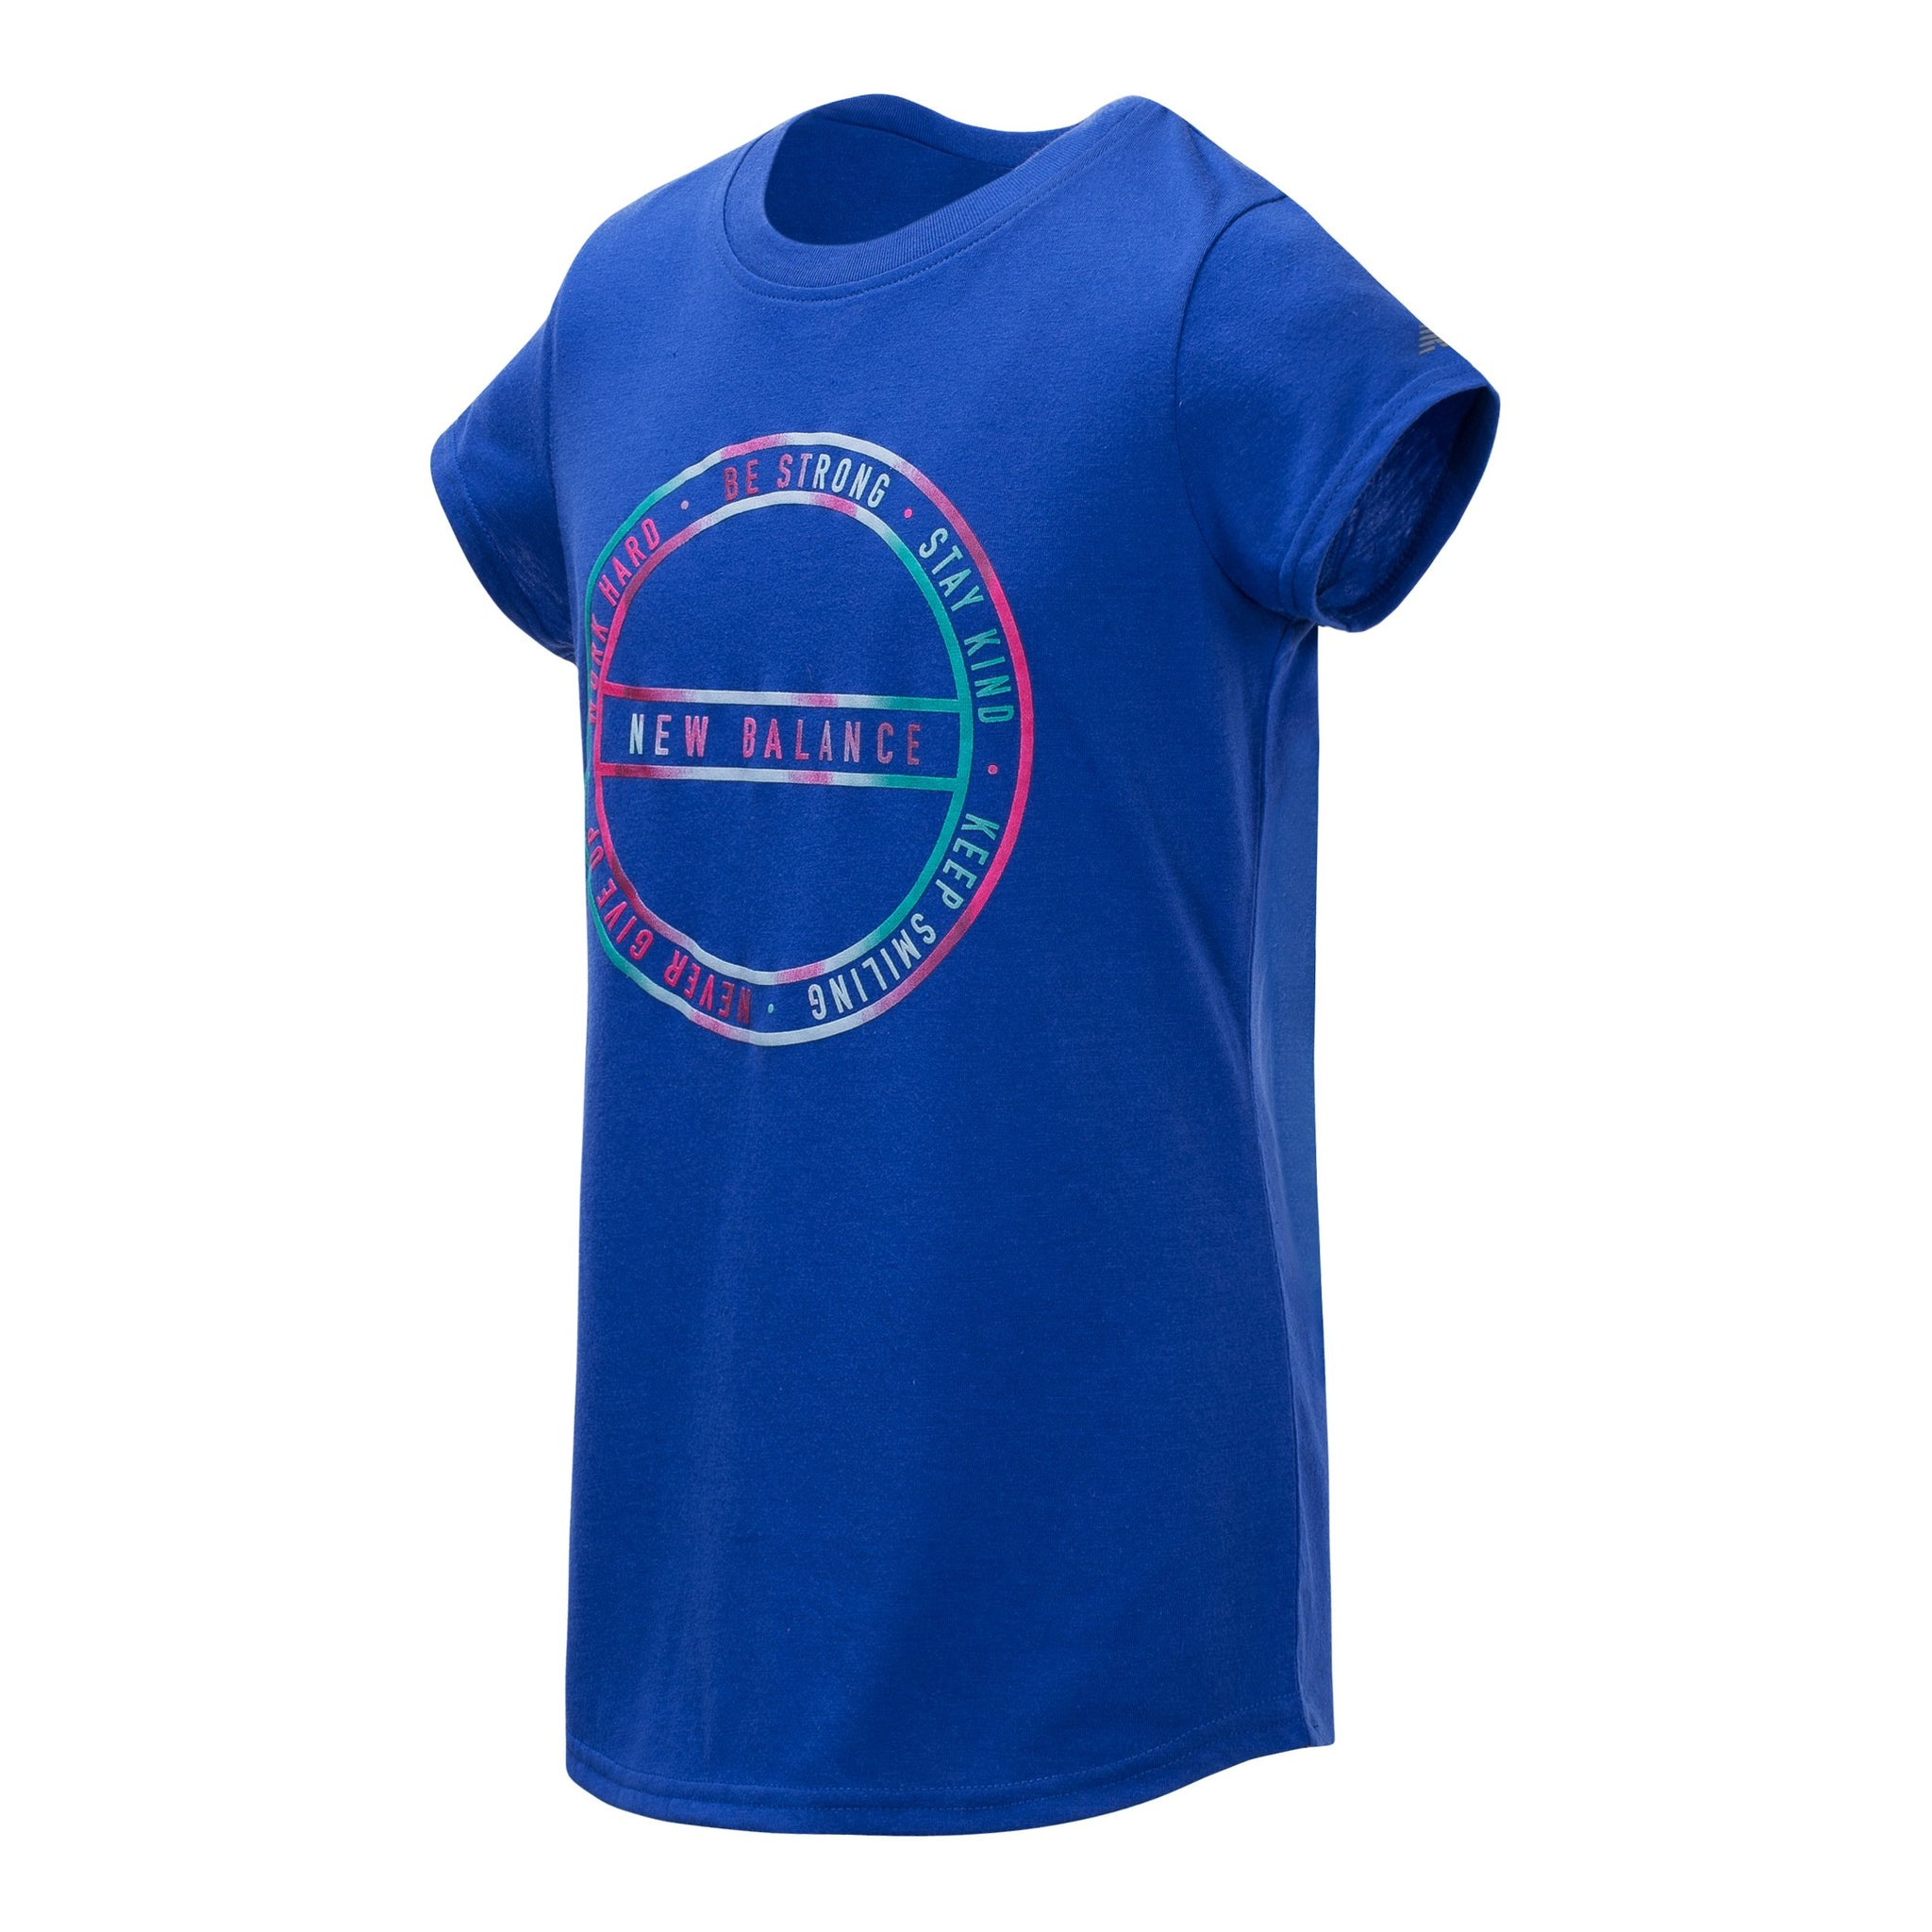 Girls' New Balance UV Blue Short Sleeve Graphic Tee